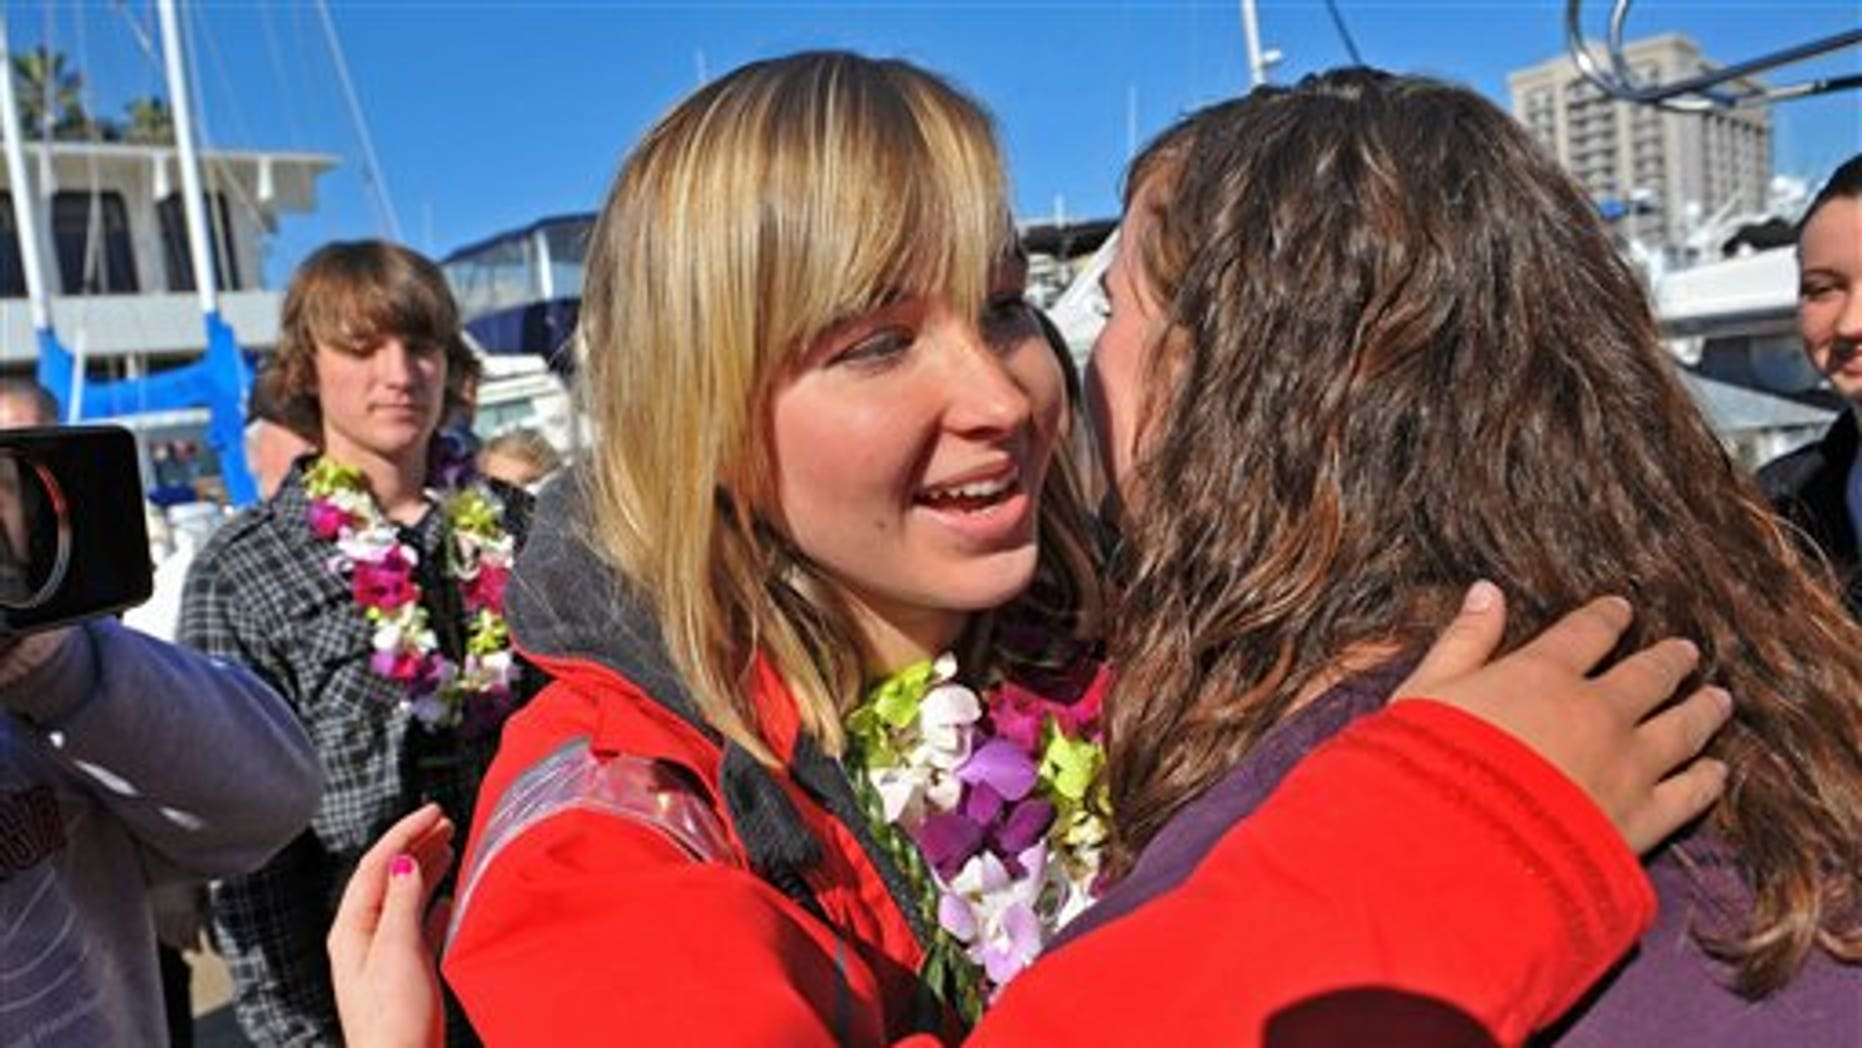 File - In this Jan. 23, 2010 file photo Abby Sunderland, left, 16,  gets a hug from friend Casey Nash, right, before leaving for her world record attempting solo journey around the world from the Del Rey Yacht Club in Marina del Rey, Calif. Rescuers searched Thursday, June 10, 2010 for her somewhere between Africa and Australia. The family spokesperson says emergency beacons were activated overnight and there has been a loss of communication. She was feared in trouble in the southern Indian Ocean. (AP Photo/Richard Hartog)